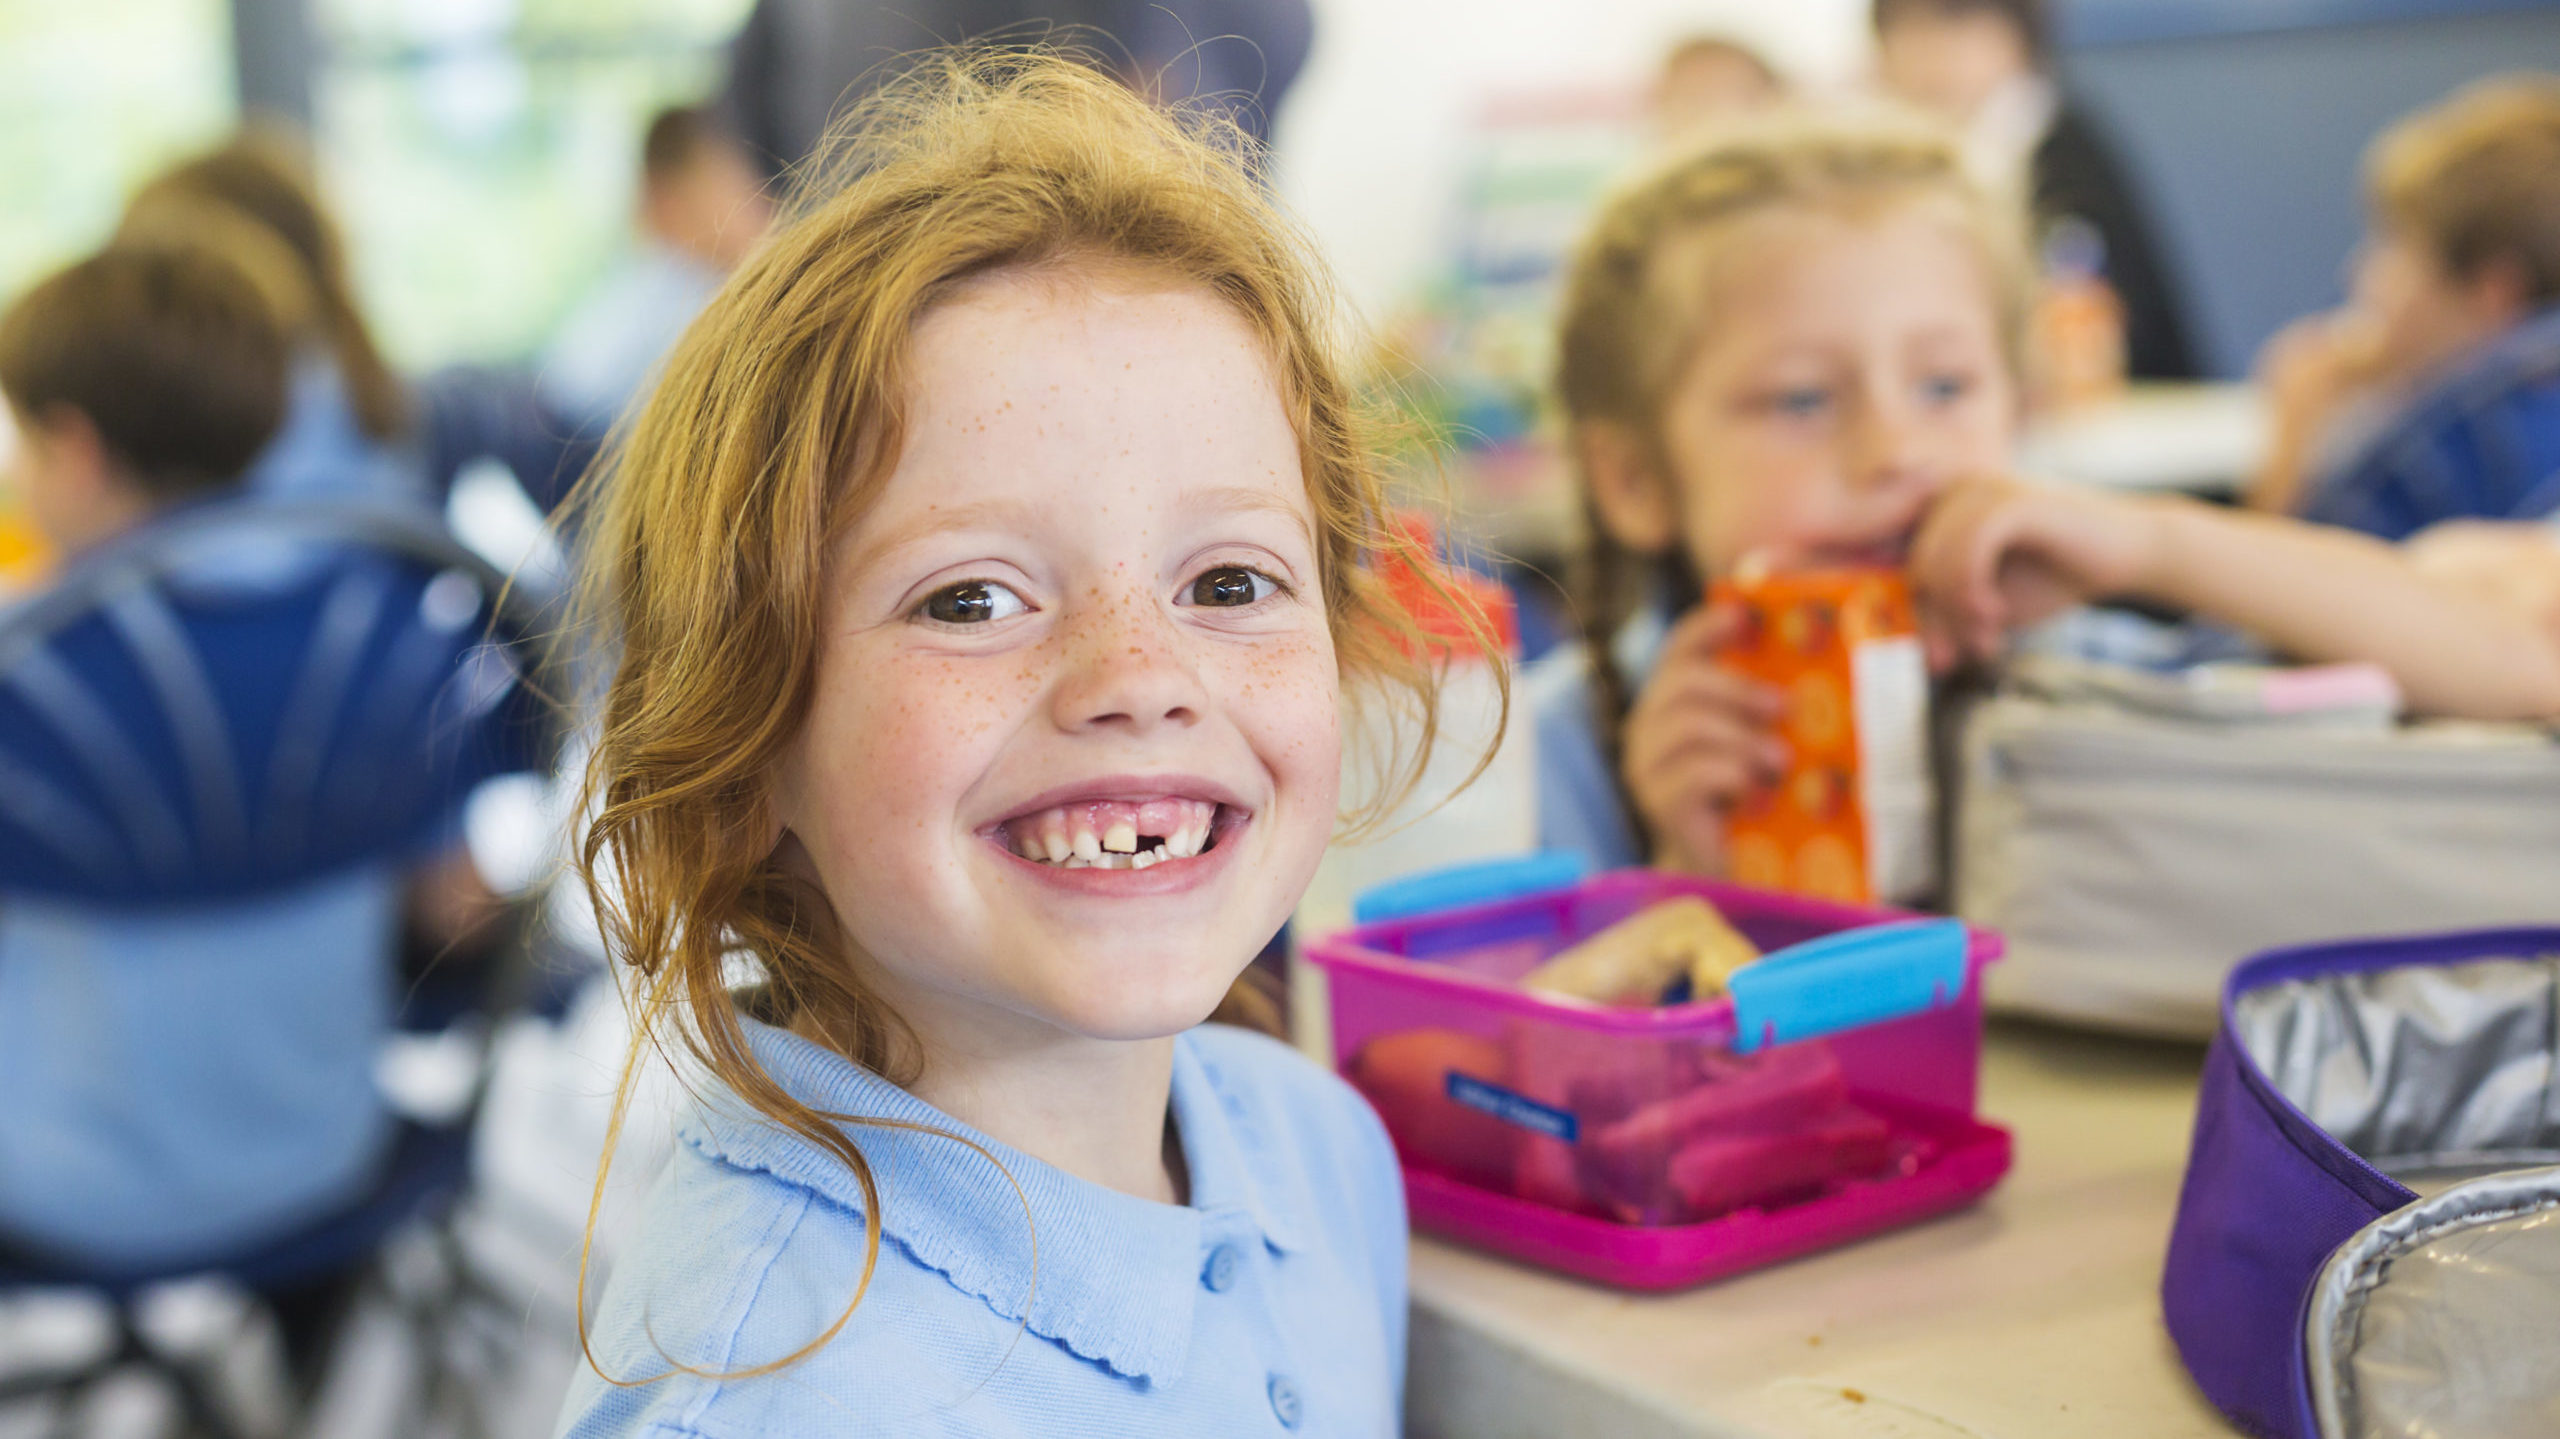 Smiling school students in uniform missing a tooth with a healthy sandwich for lunch